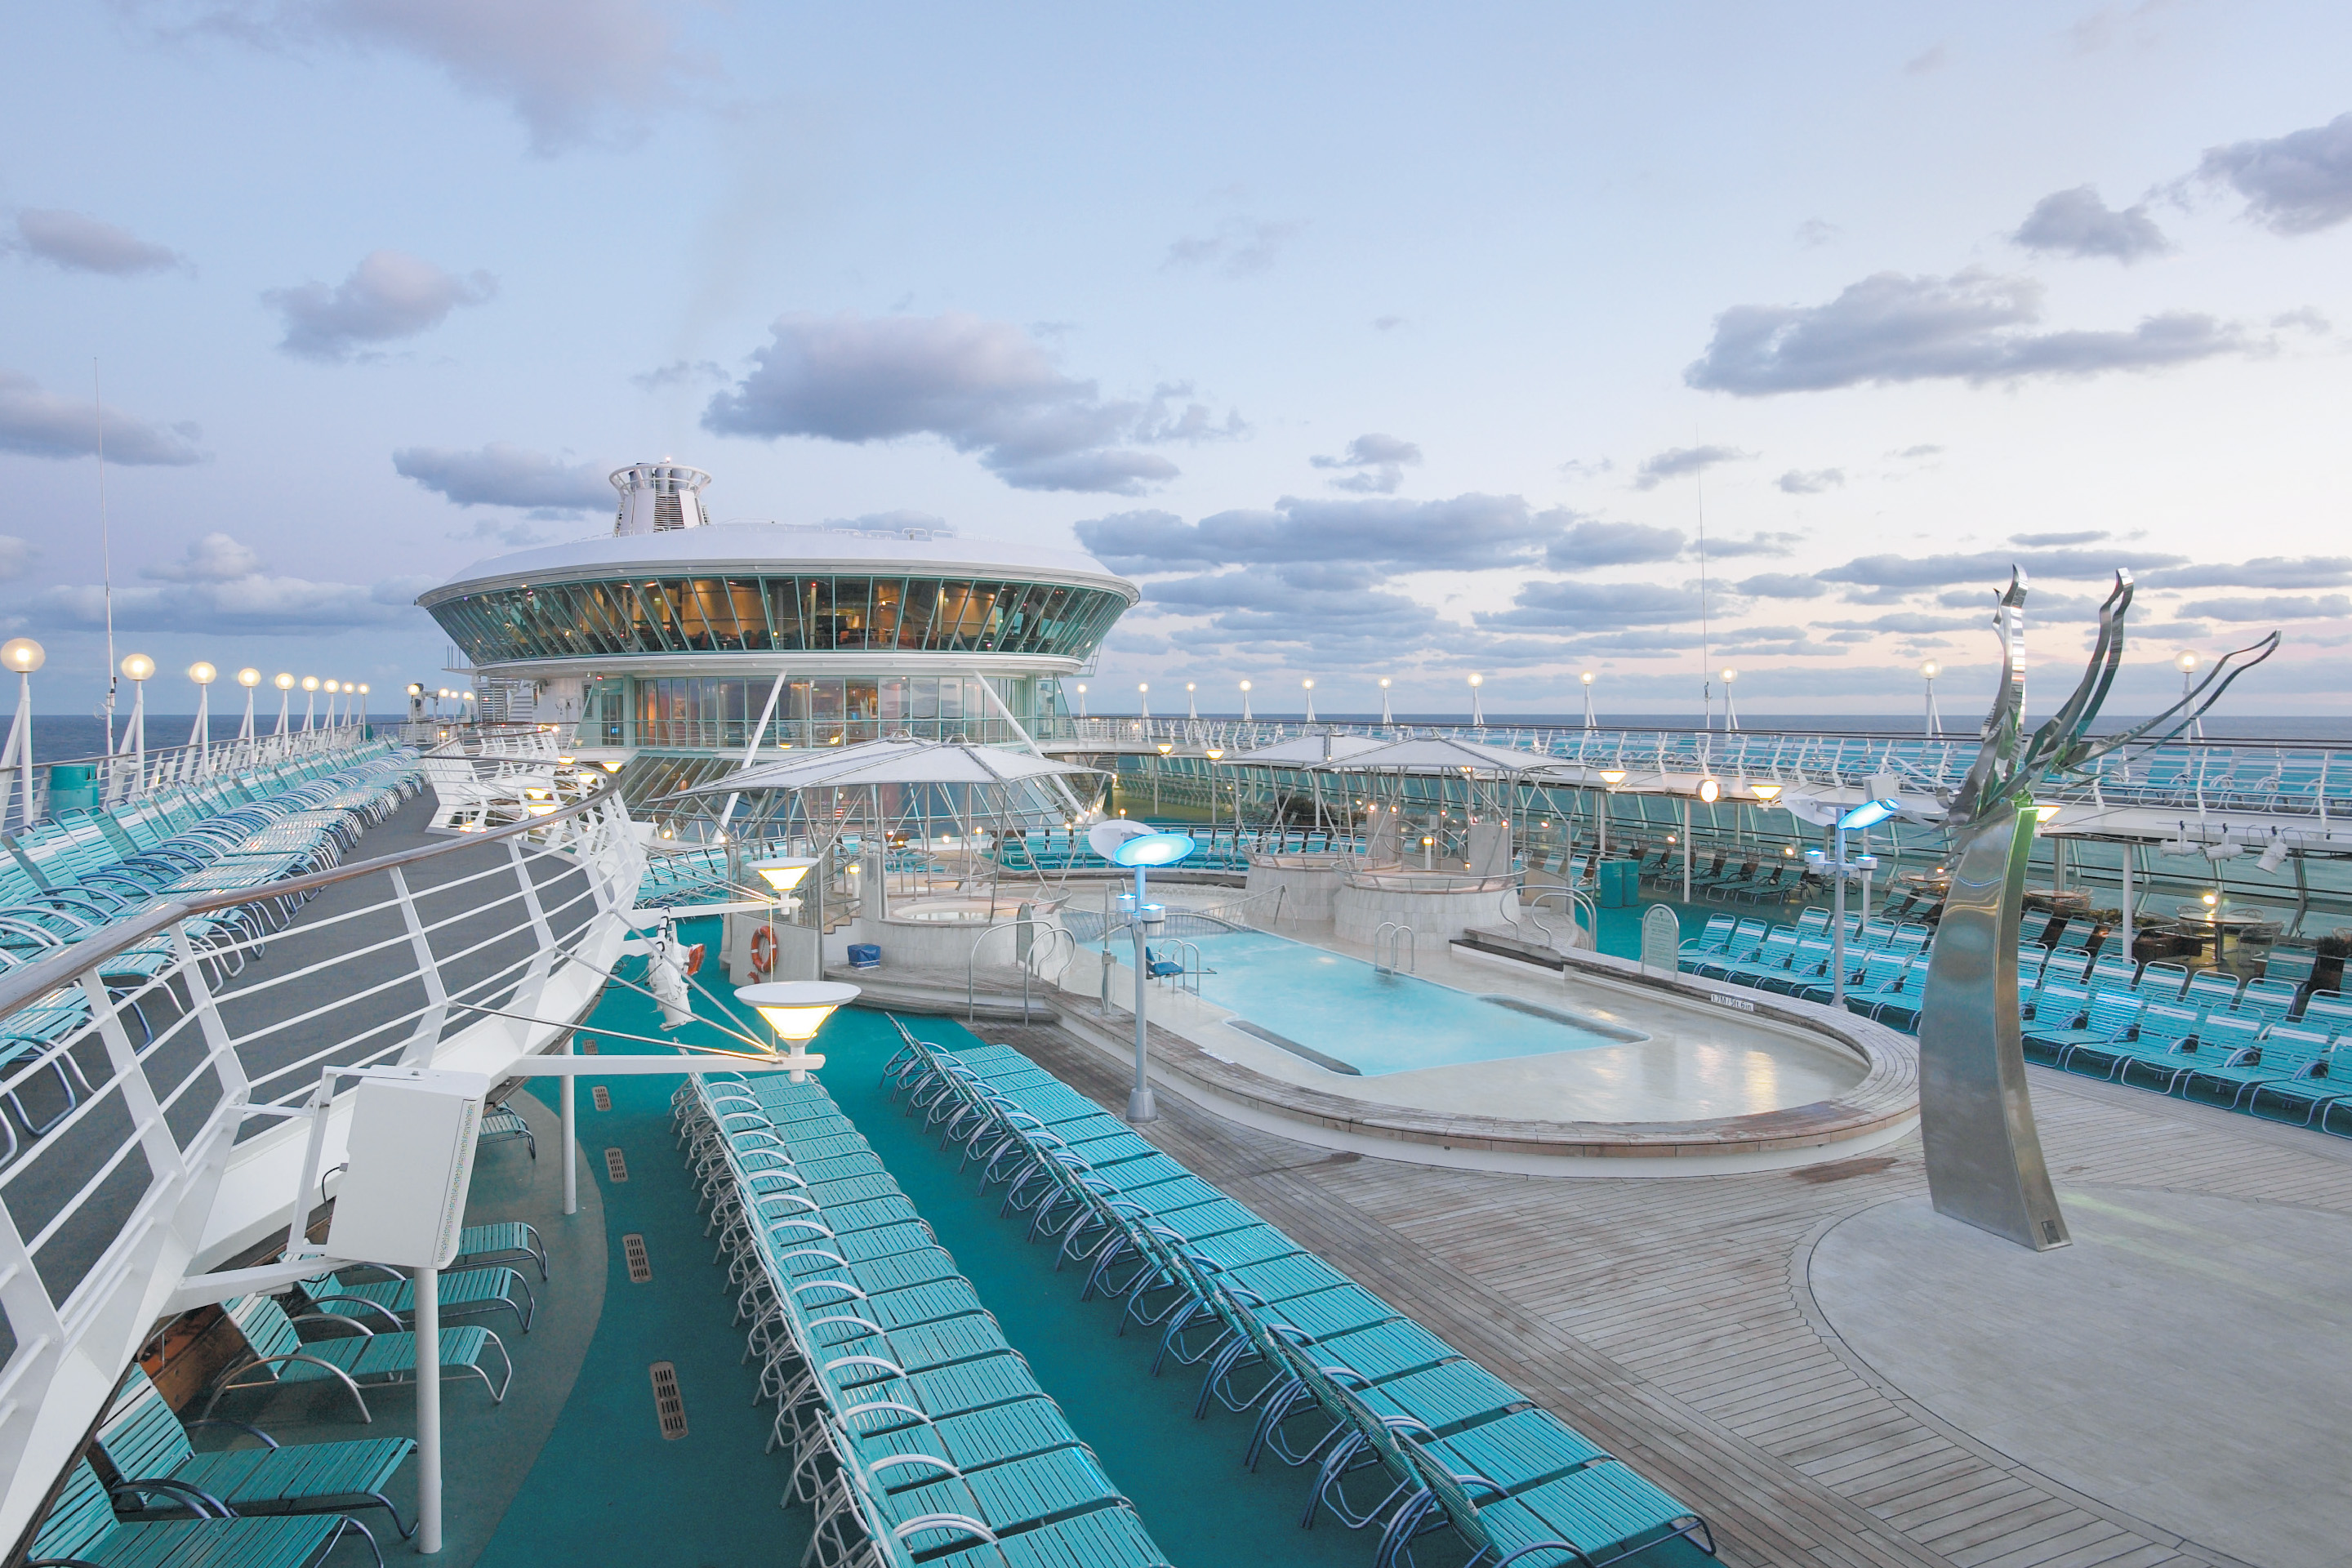 Pool Deck Vision of the Seas